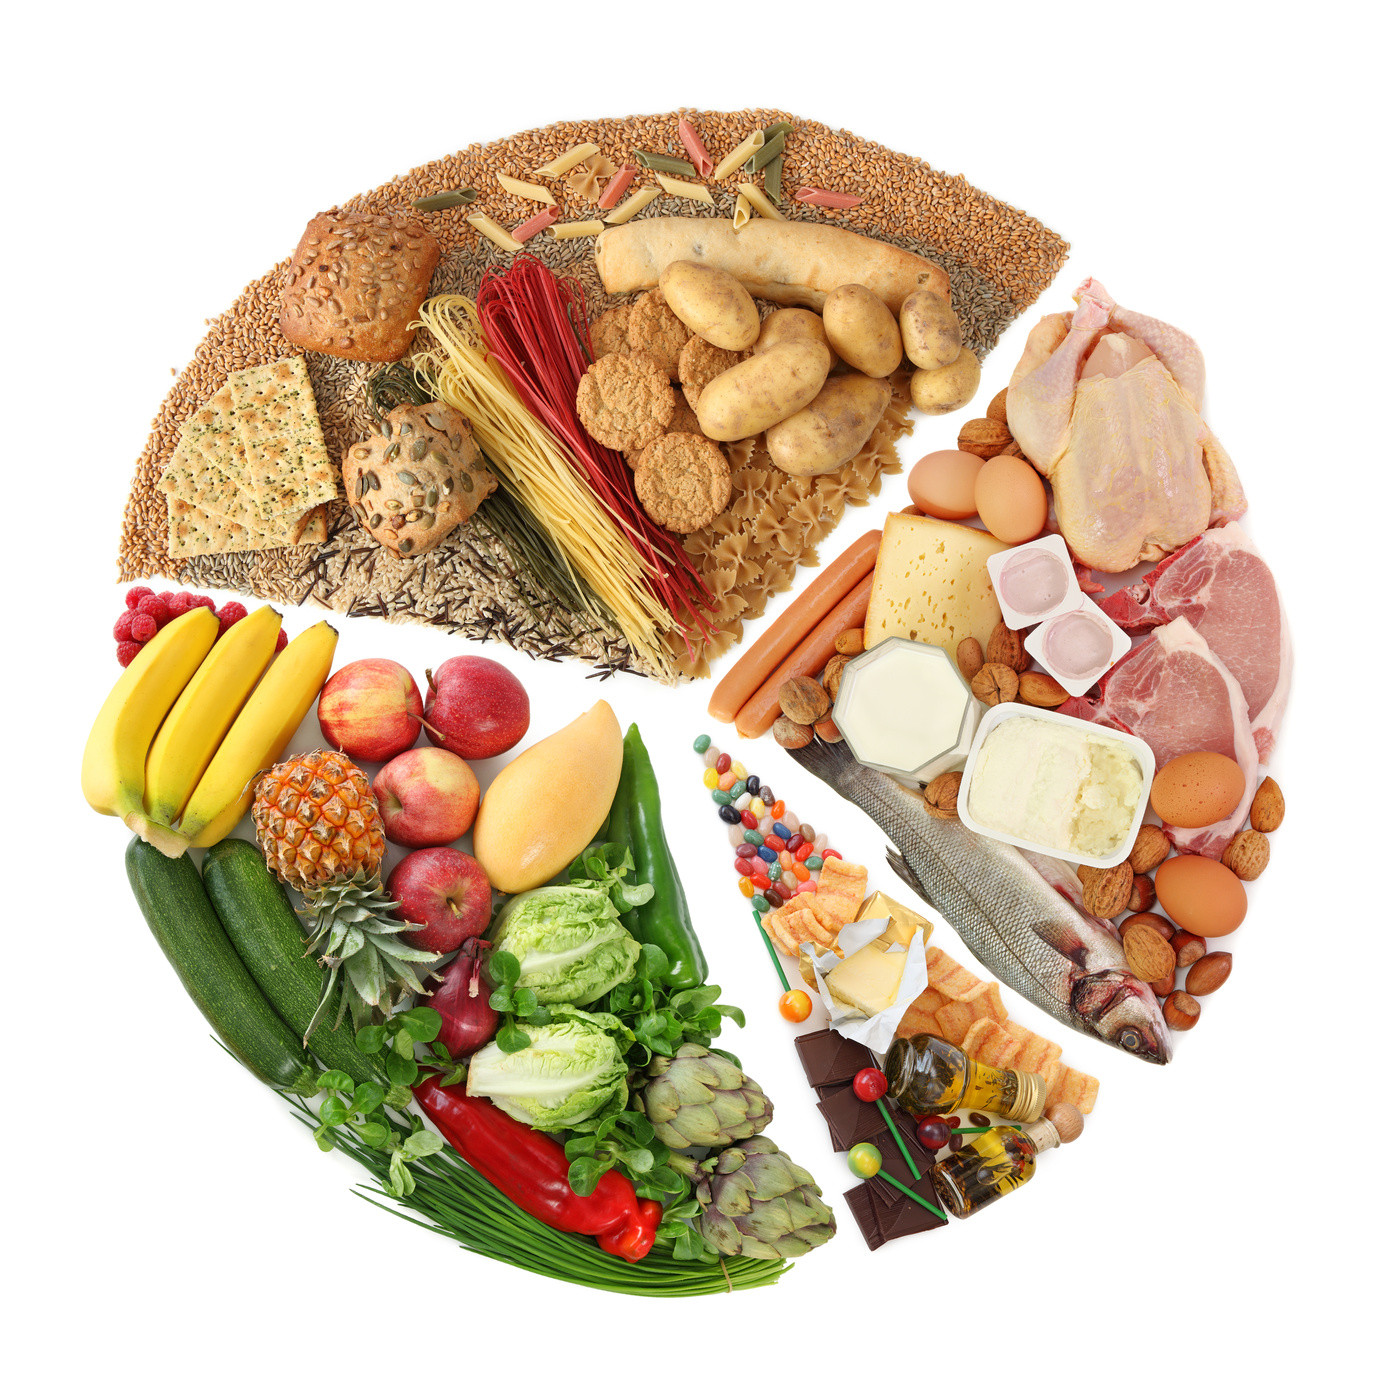 Healthy Foods And Snacks  Eat These Foods and Never Diet Again eBlogfa